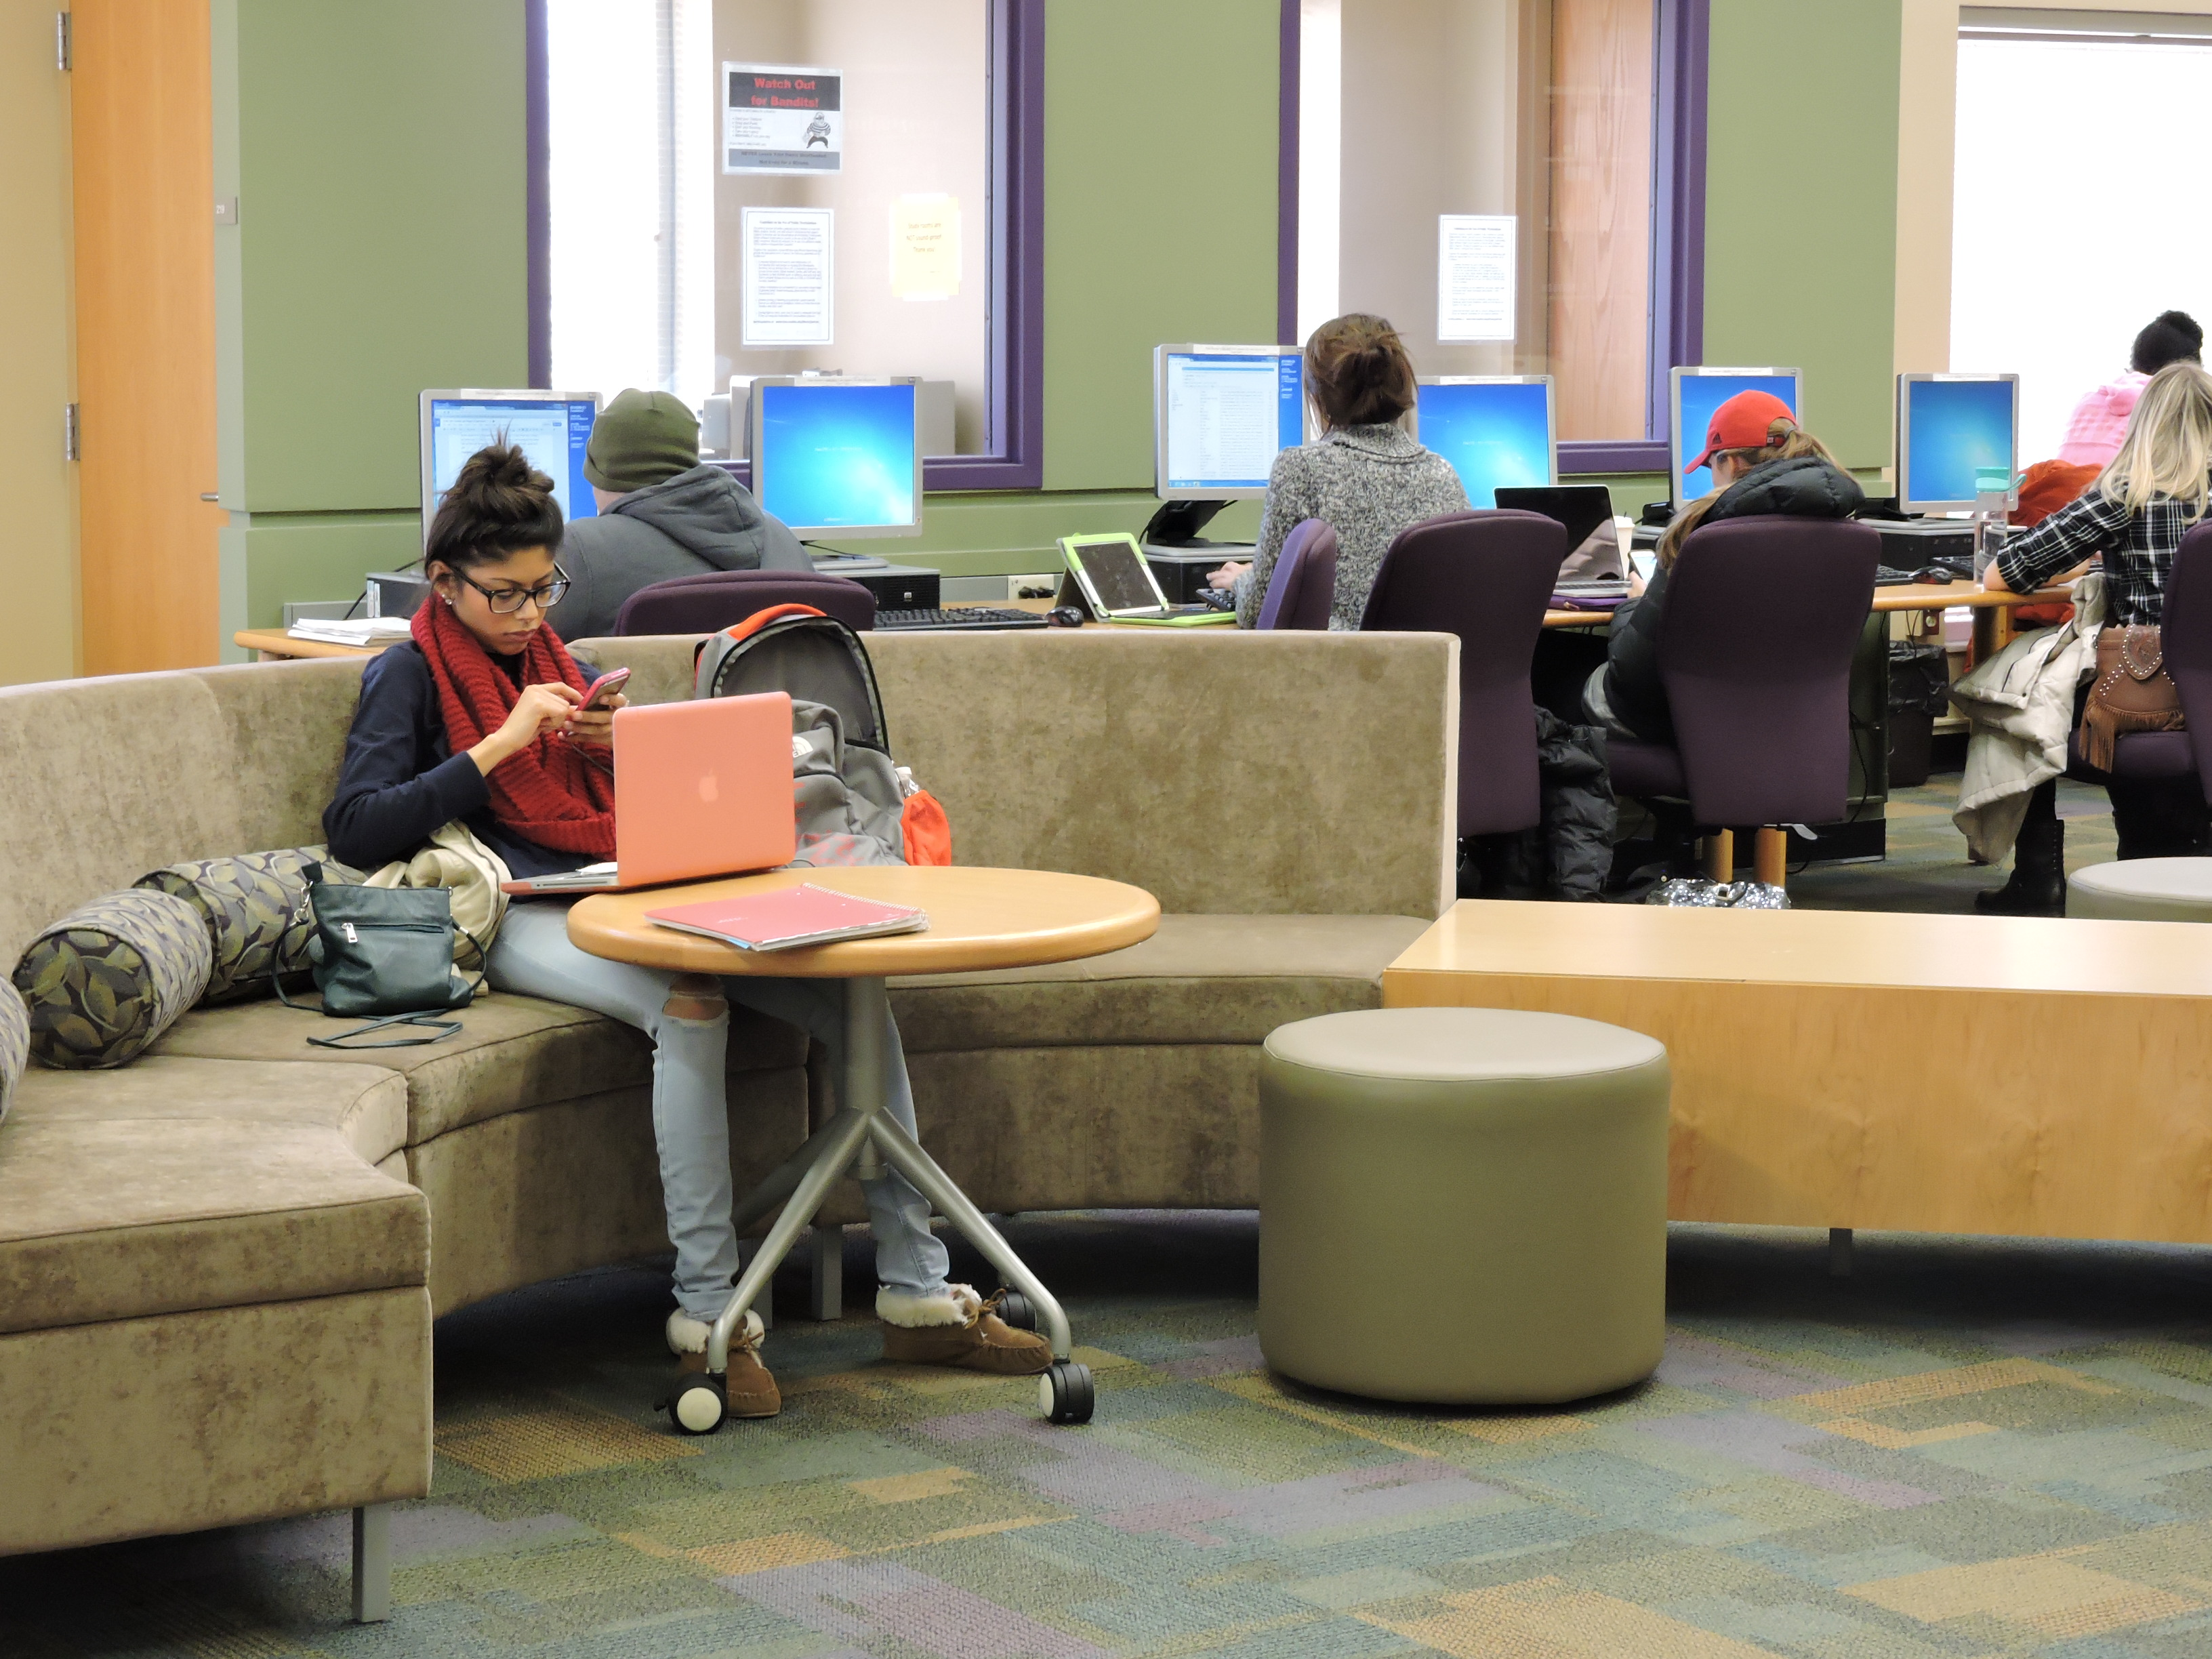 Rentschler Library Is Located On The Second Floor Of Schwarm Hall At Miami University Hamilton Between Its Close Relationship With Students